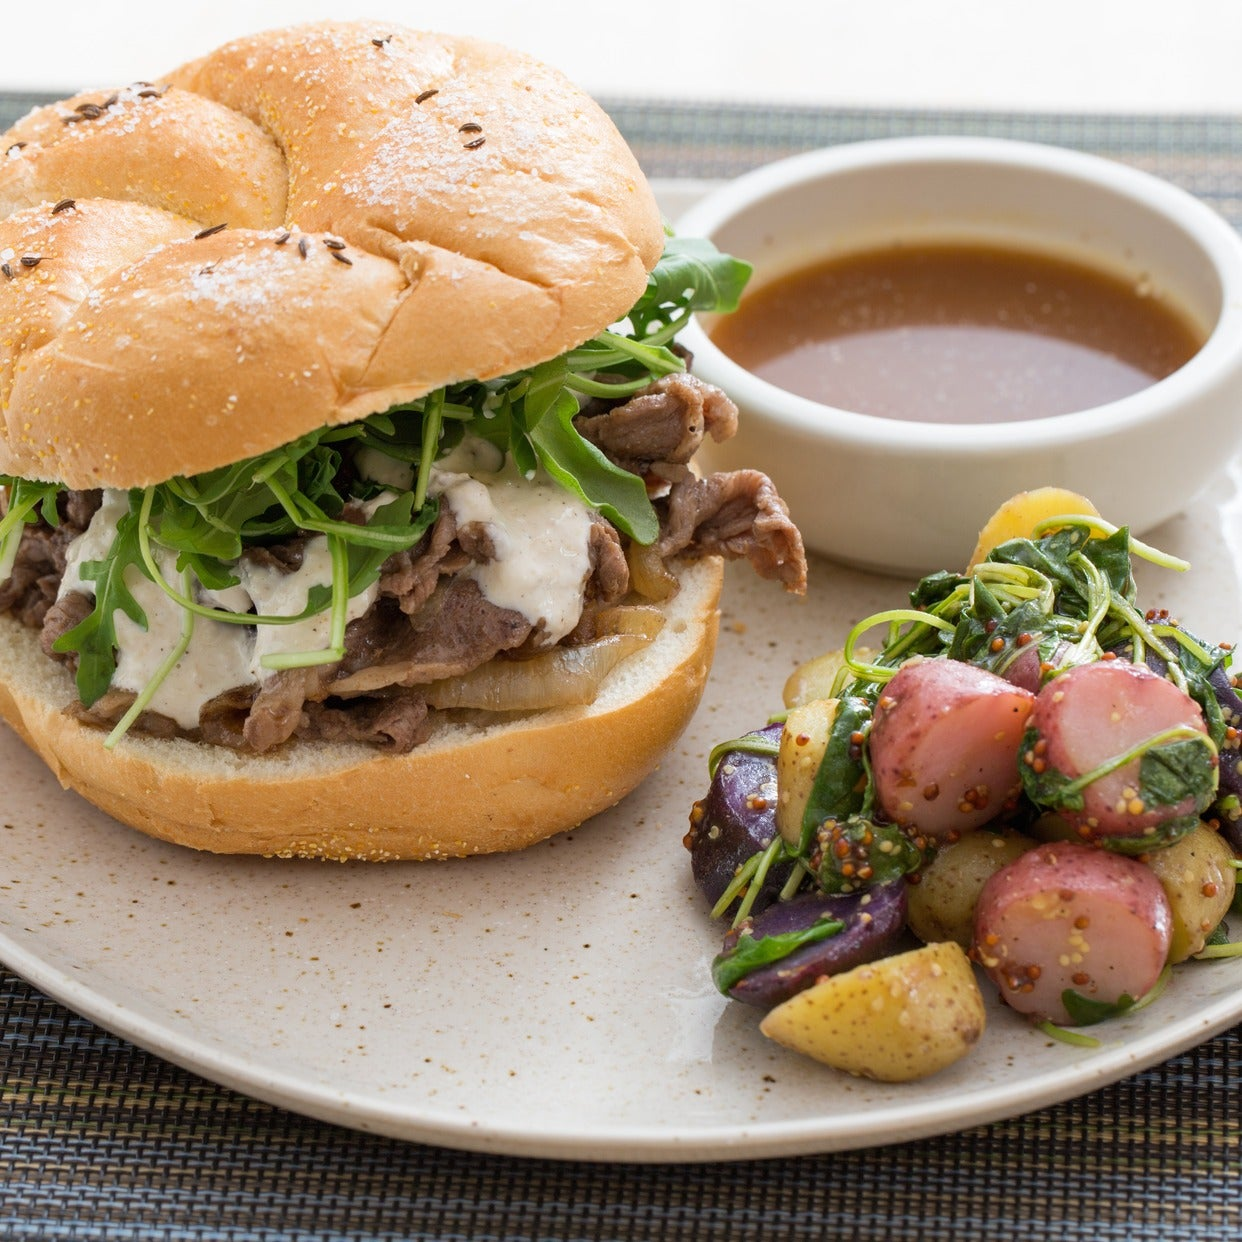 Beef on Weck Sandwiches with Heirloom Potato Salad